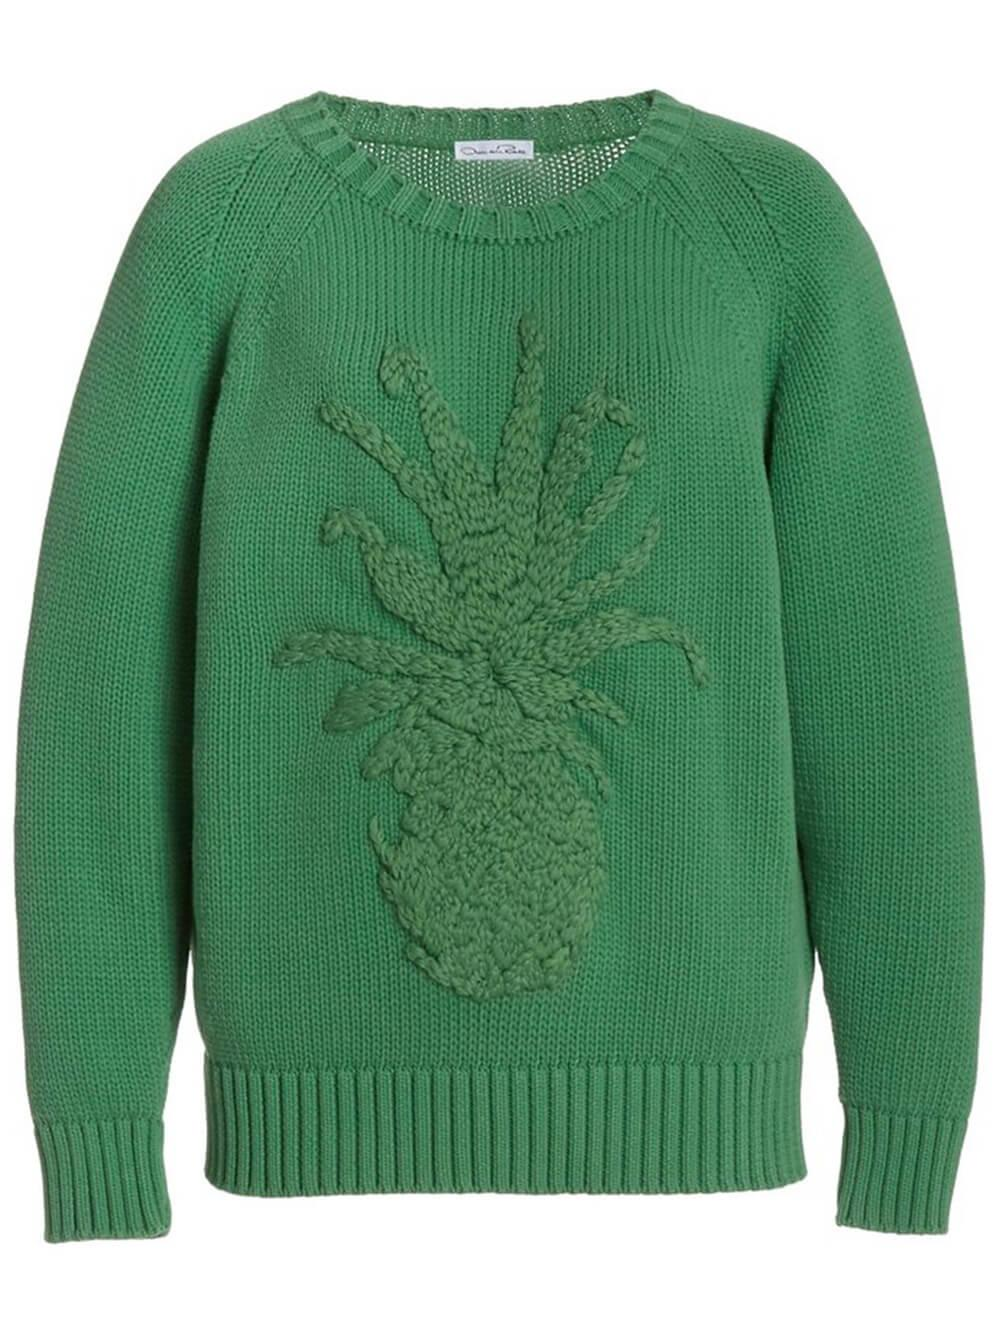 Embroidered Knit Sweater Item # 21PE170PIN